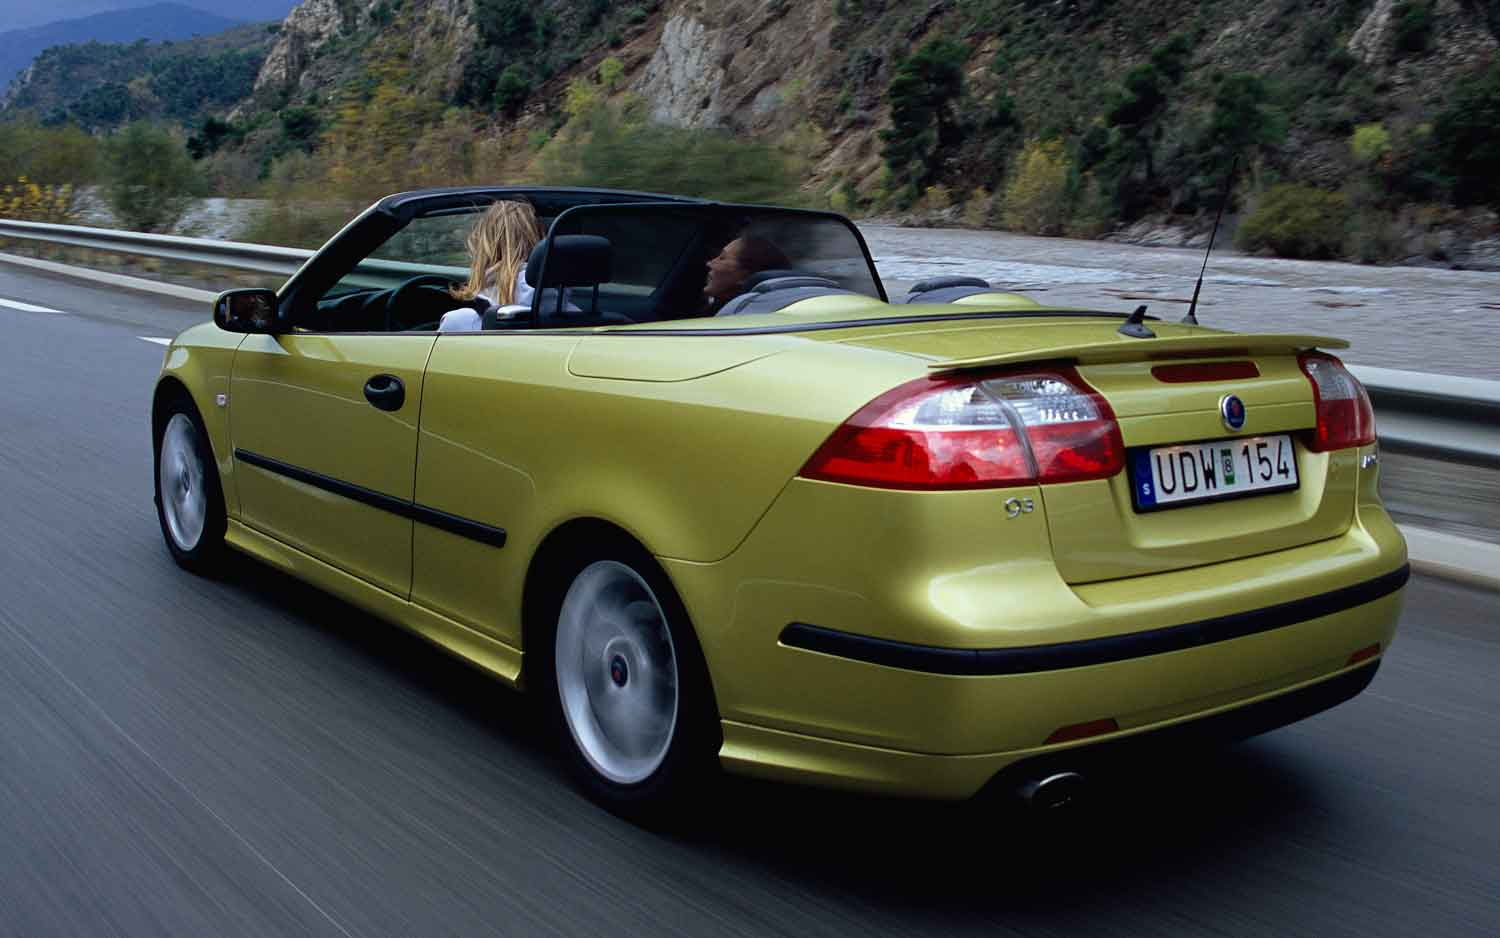 Remembering Saab: Highlights From Motor Trend's Saab Reviews and Road Tests